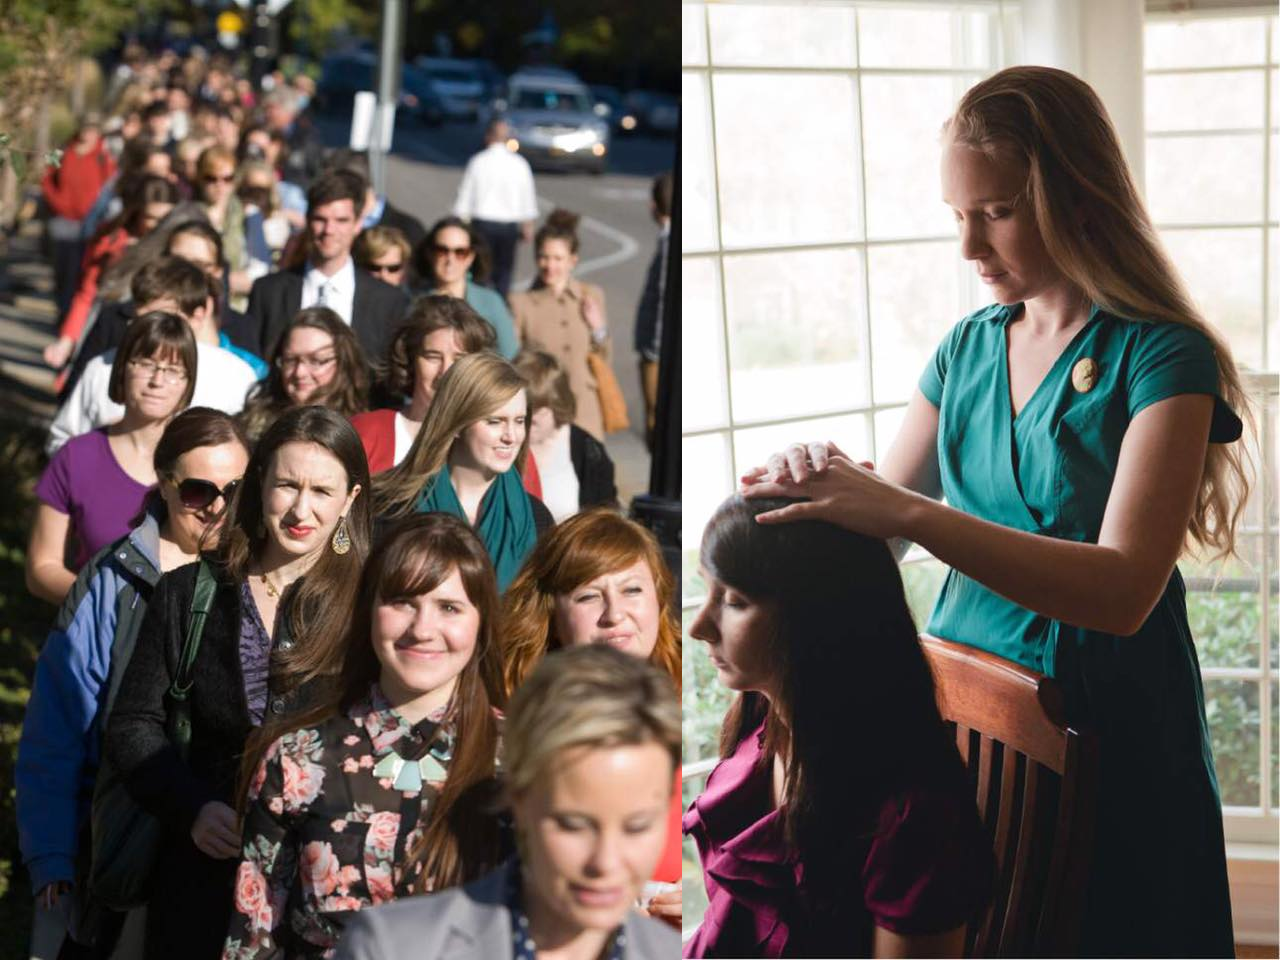 Two pictures side by side. On the left, a crowd of people are marching down the street together. On the right, a woman is giving another woman a priesthood blessing.